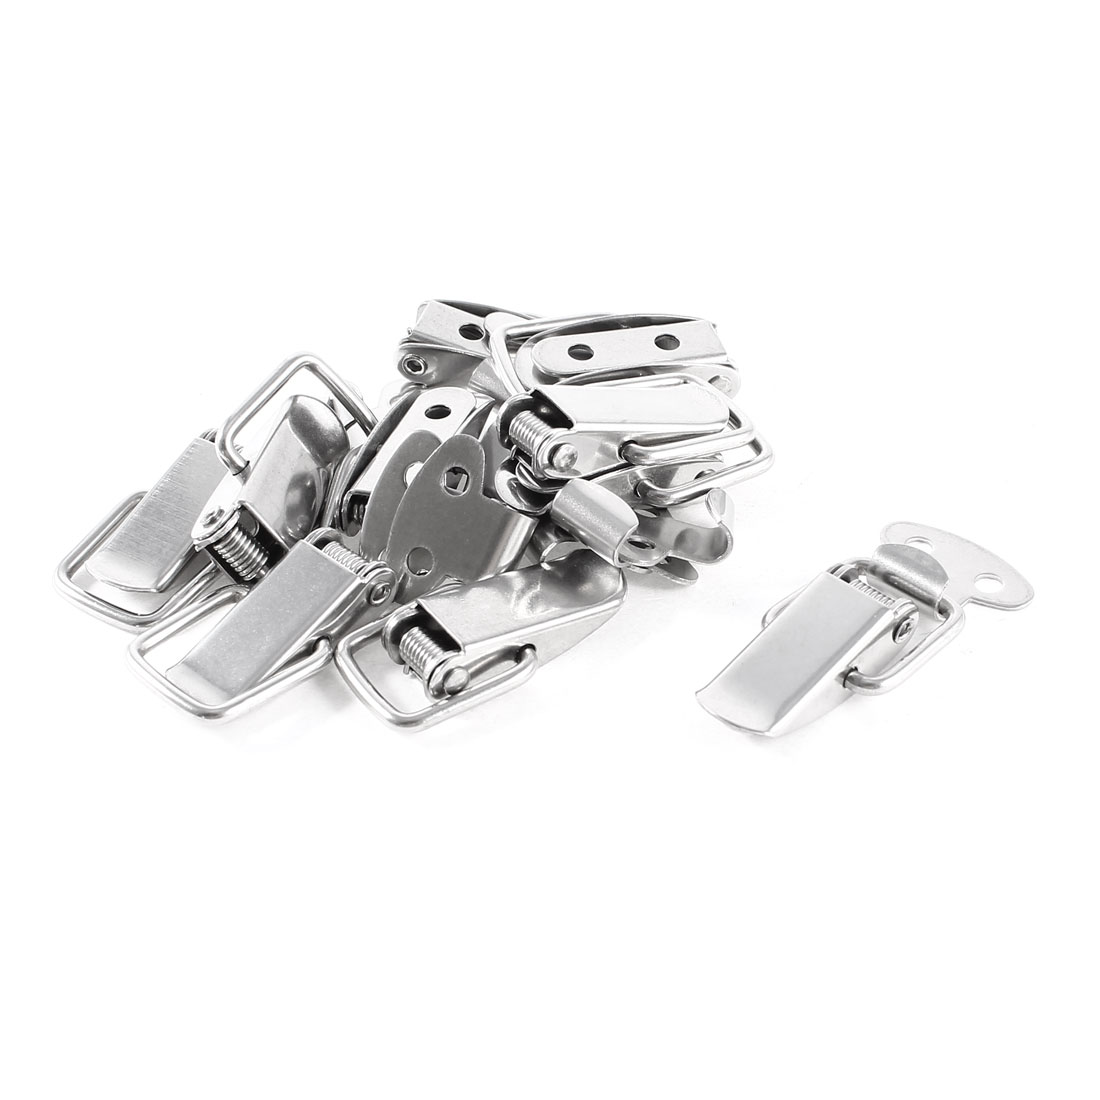 10 Set 4.5cm Long Metal Spring Loaded Silver Tone Toggle Drawer Latch